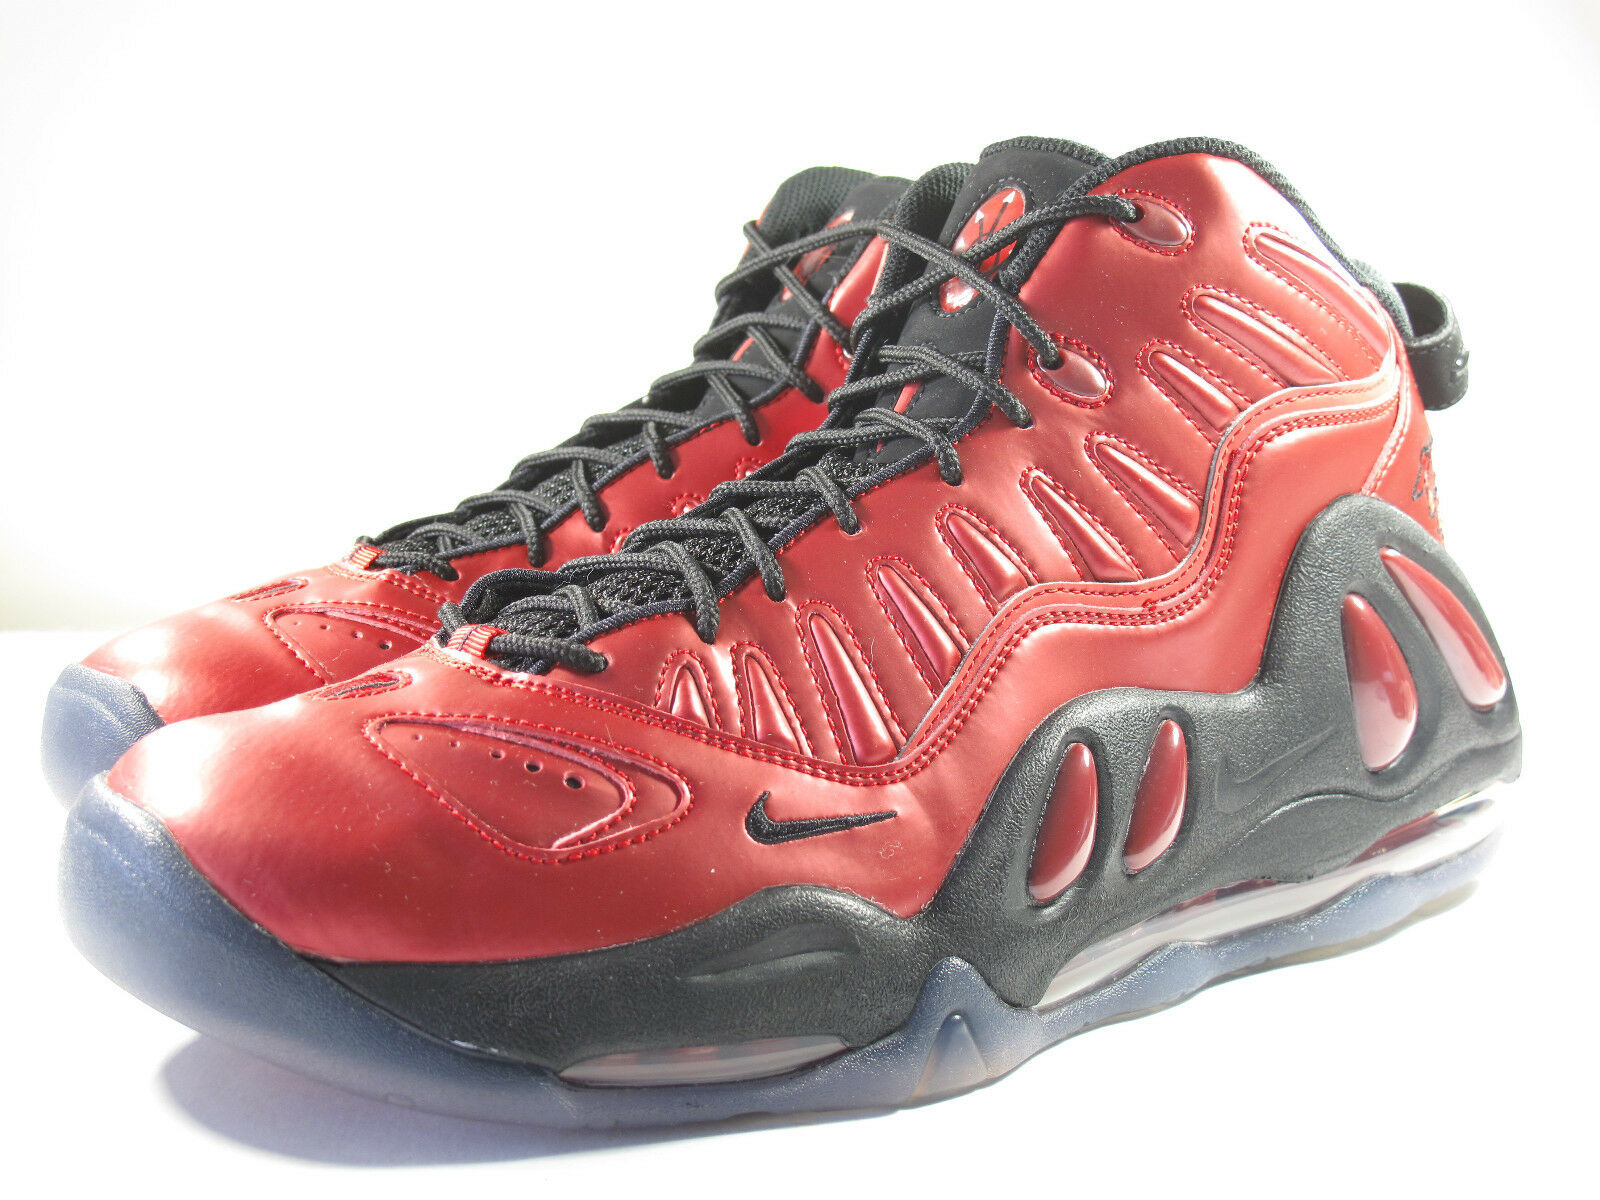 DS NIKE 2010 AIR UPTEMPO 97 VARSITY RED 8.5 FLIGHT TRAINER 90 1 TRAINER ZOOM 95